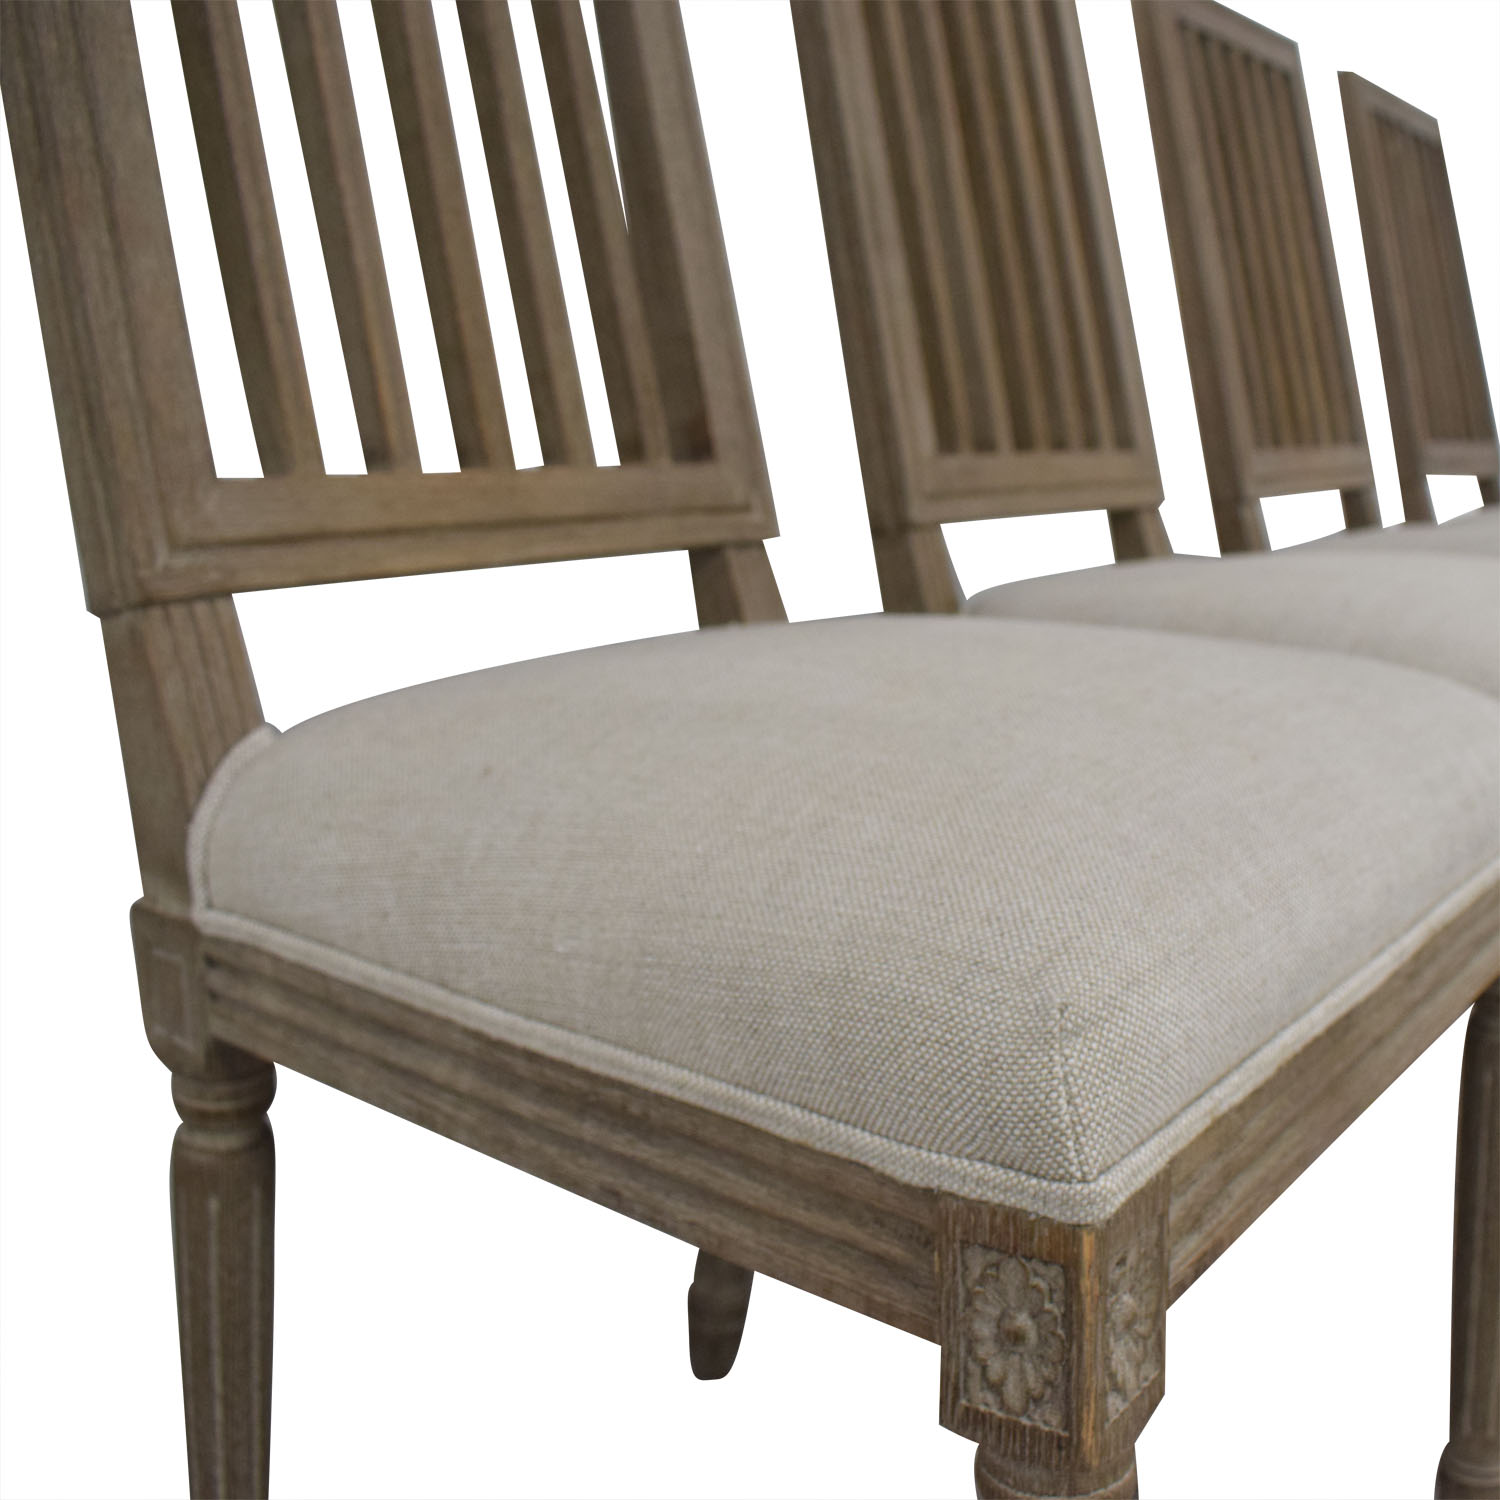 Restoration Hardware Spindle Back Dining Chairs / Dining Chairs